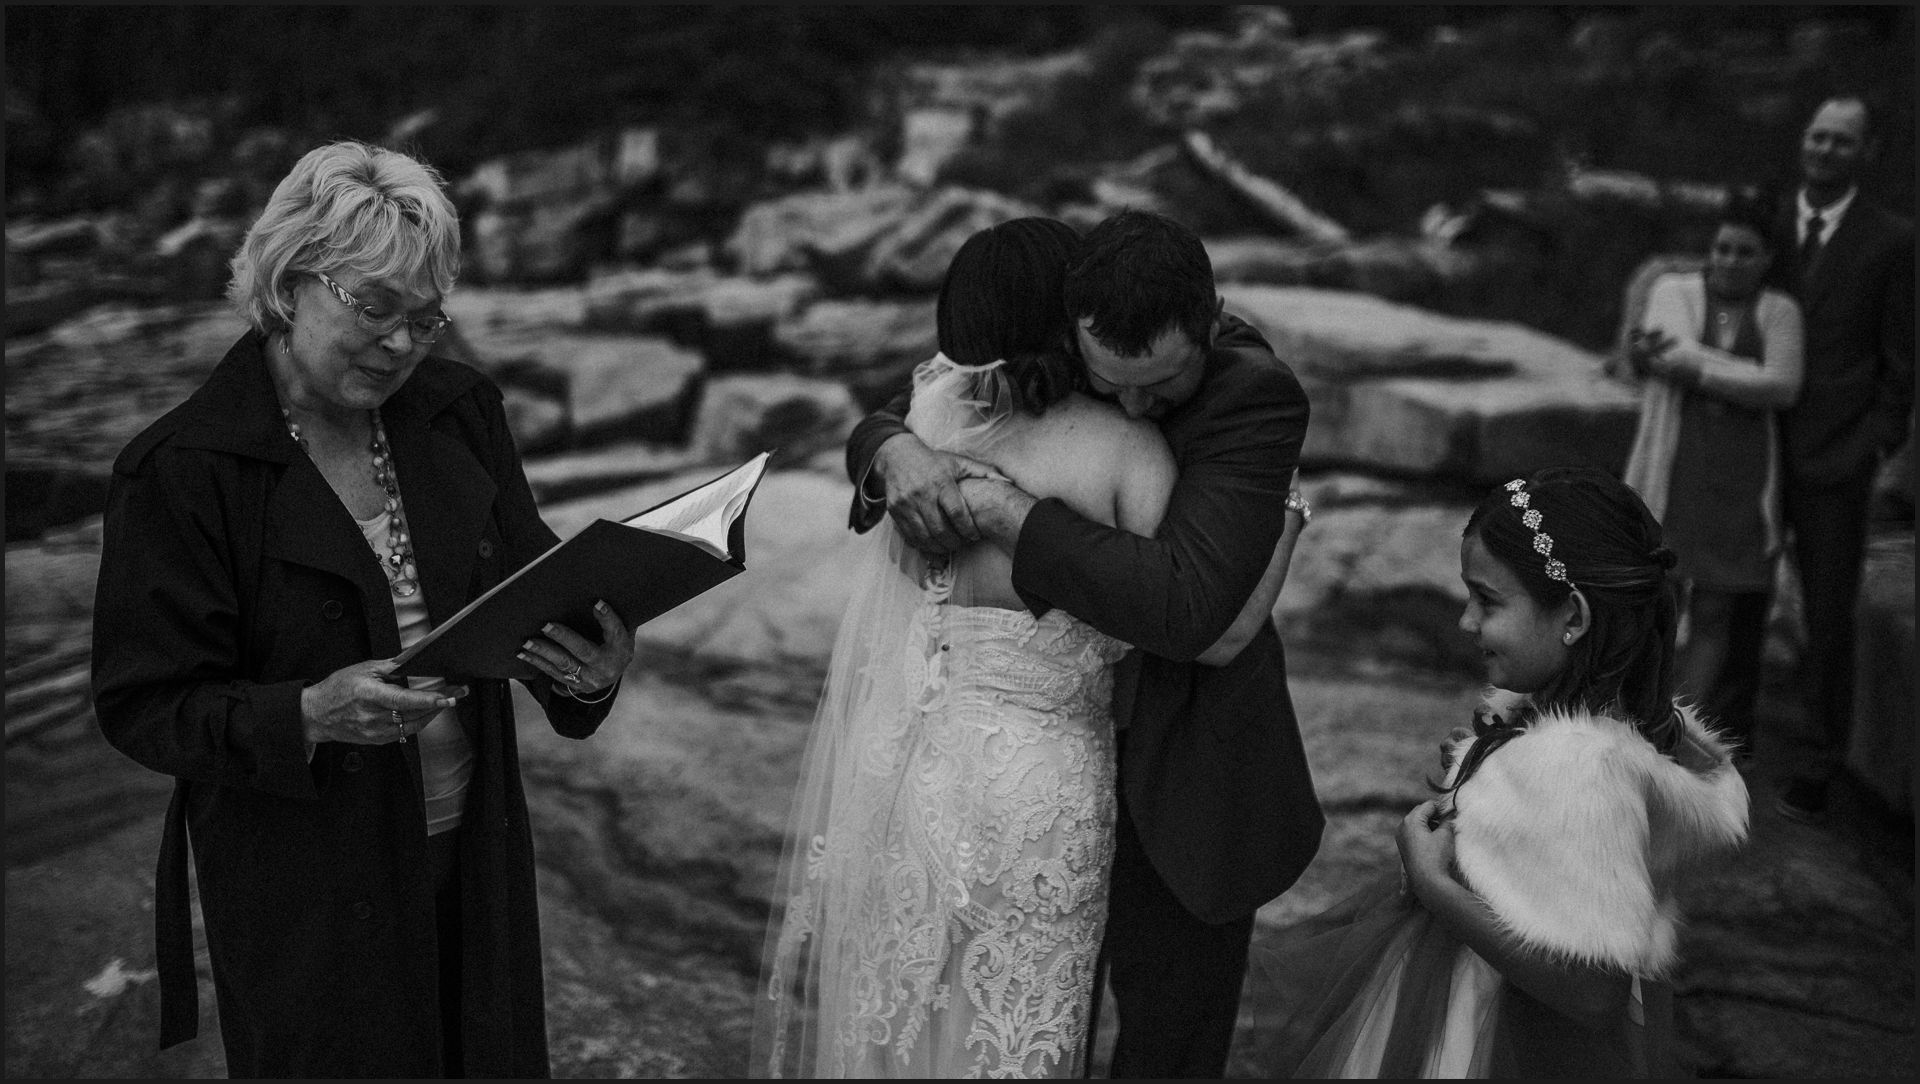 bride and groom, hug, ceremony, black and white